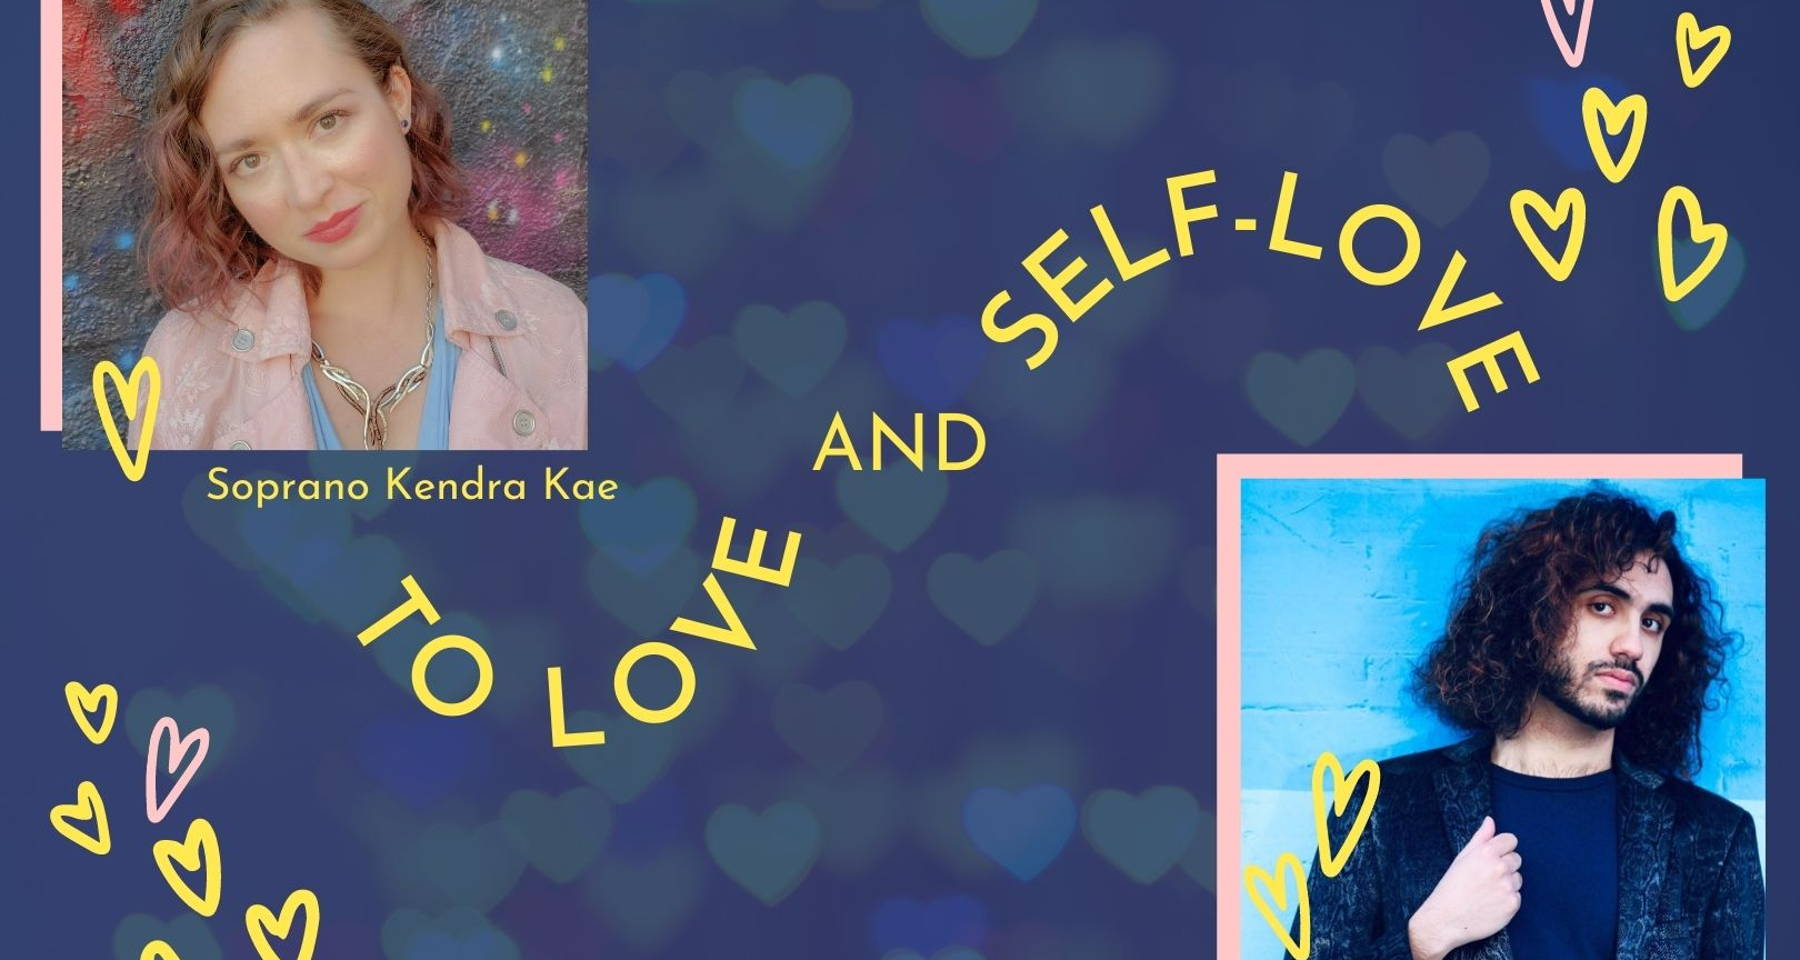 To Love and Self-Love